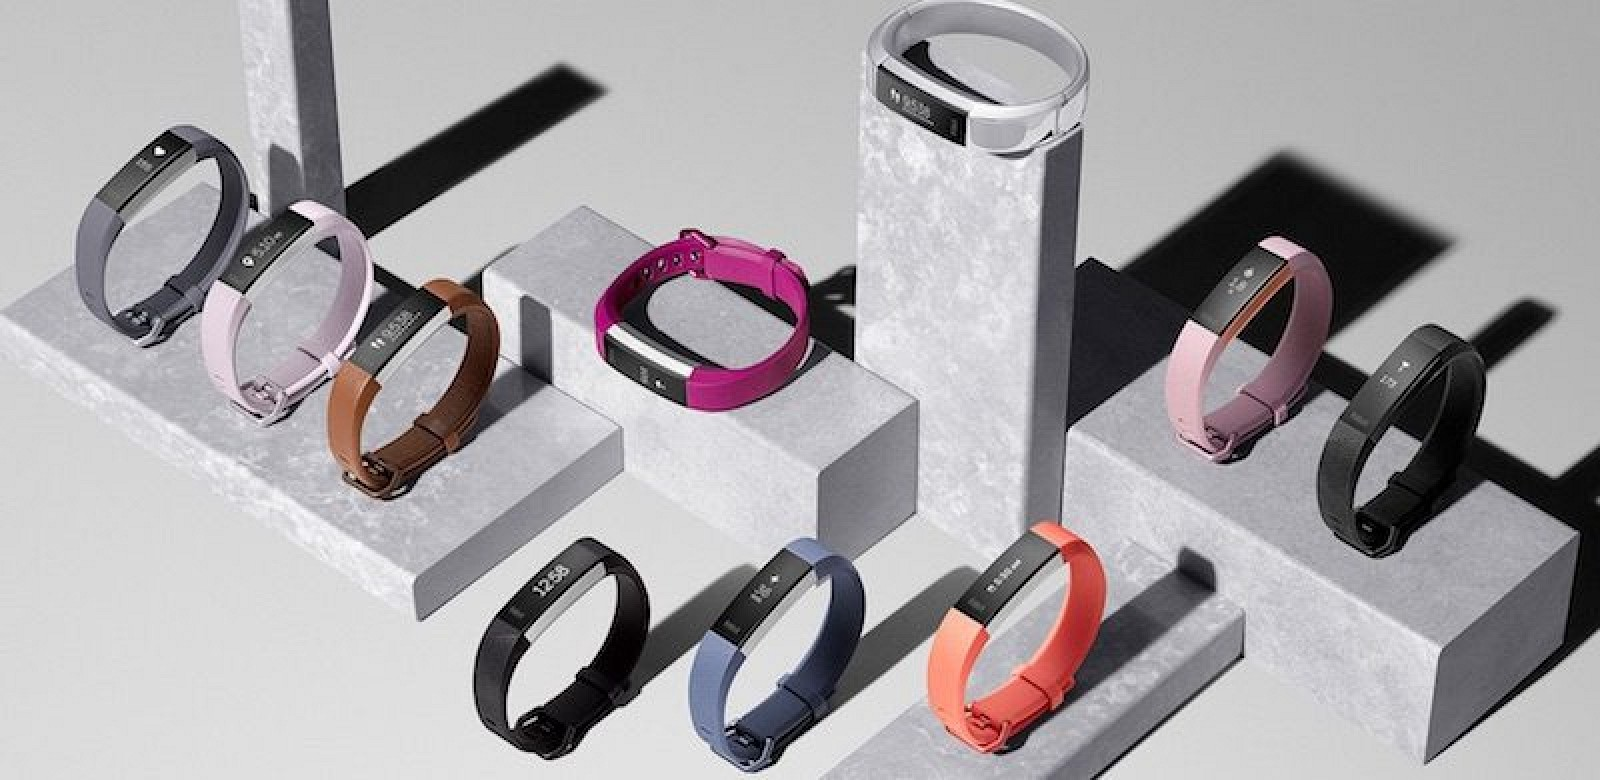 Fitbit Announces 'Fitbit Alta HR' Wearable With Continuous